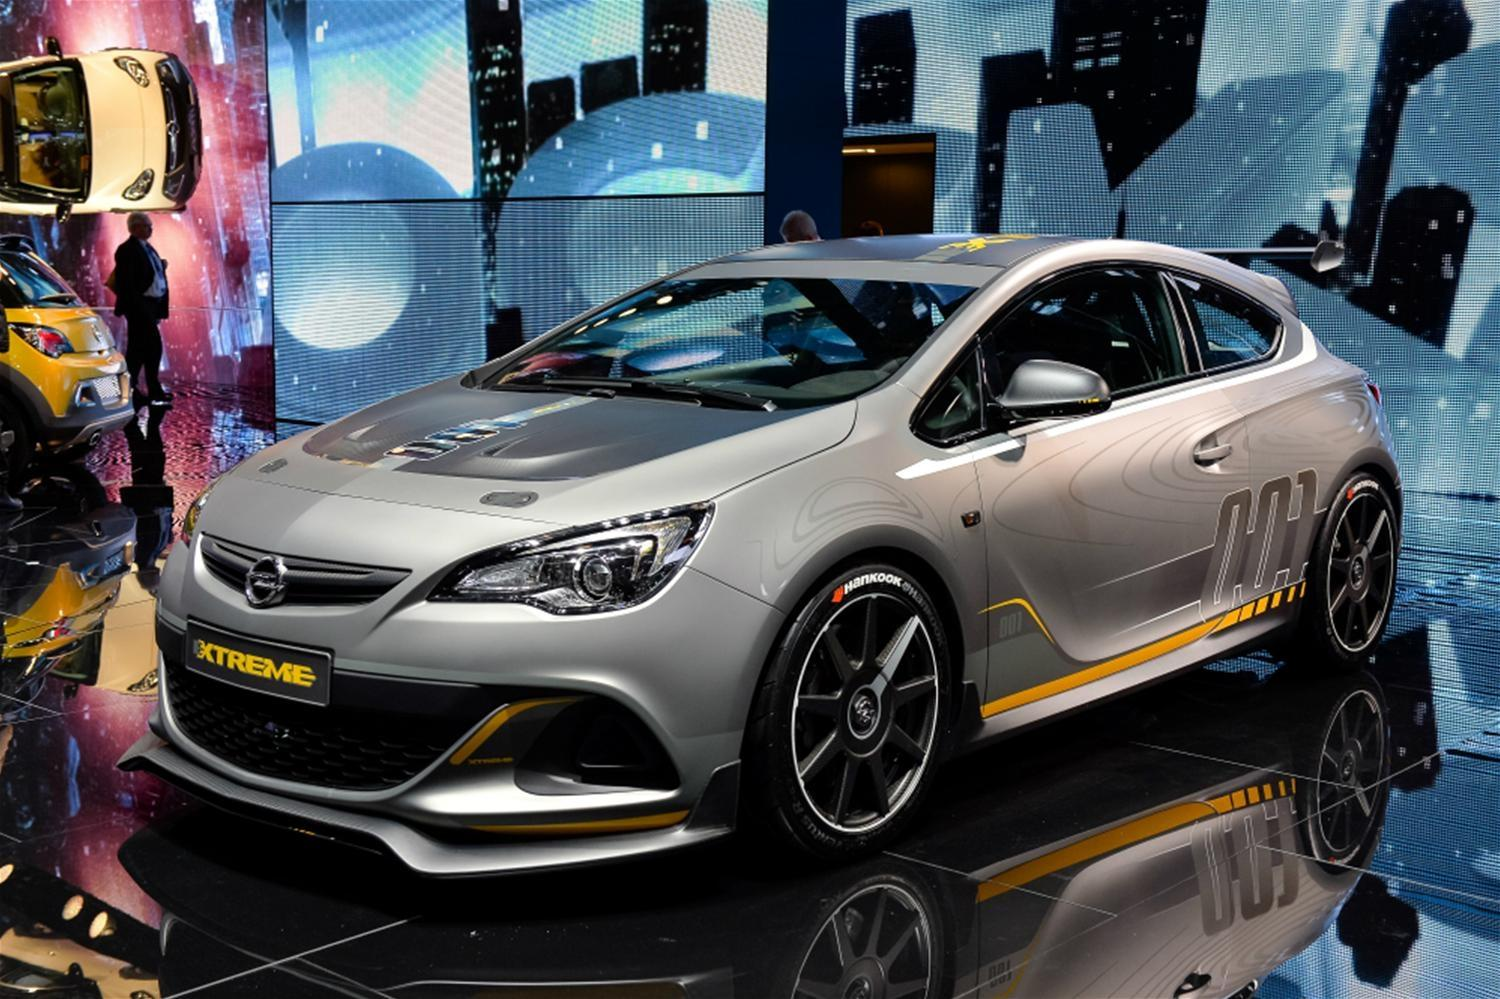 Vauxhall VXR EXTREME Set for Production